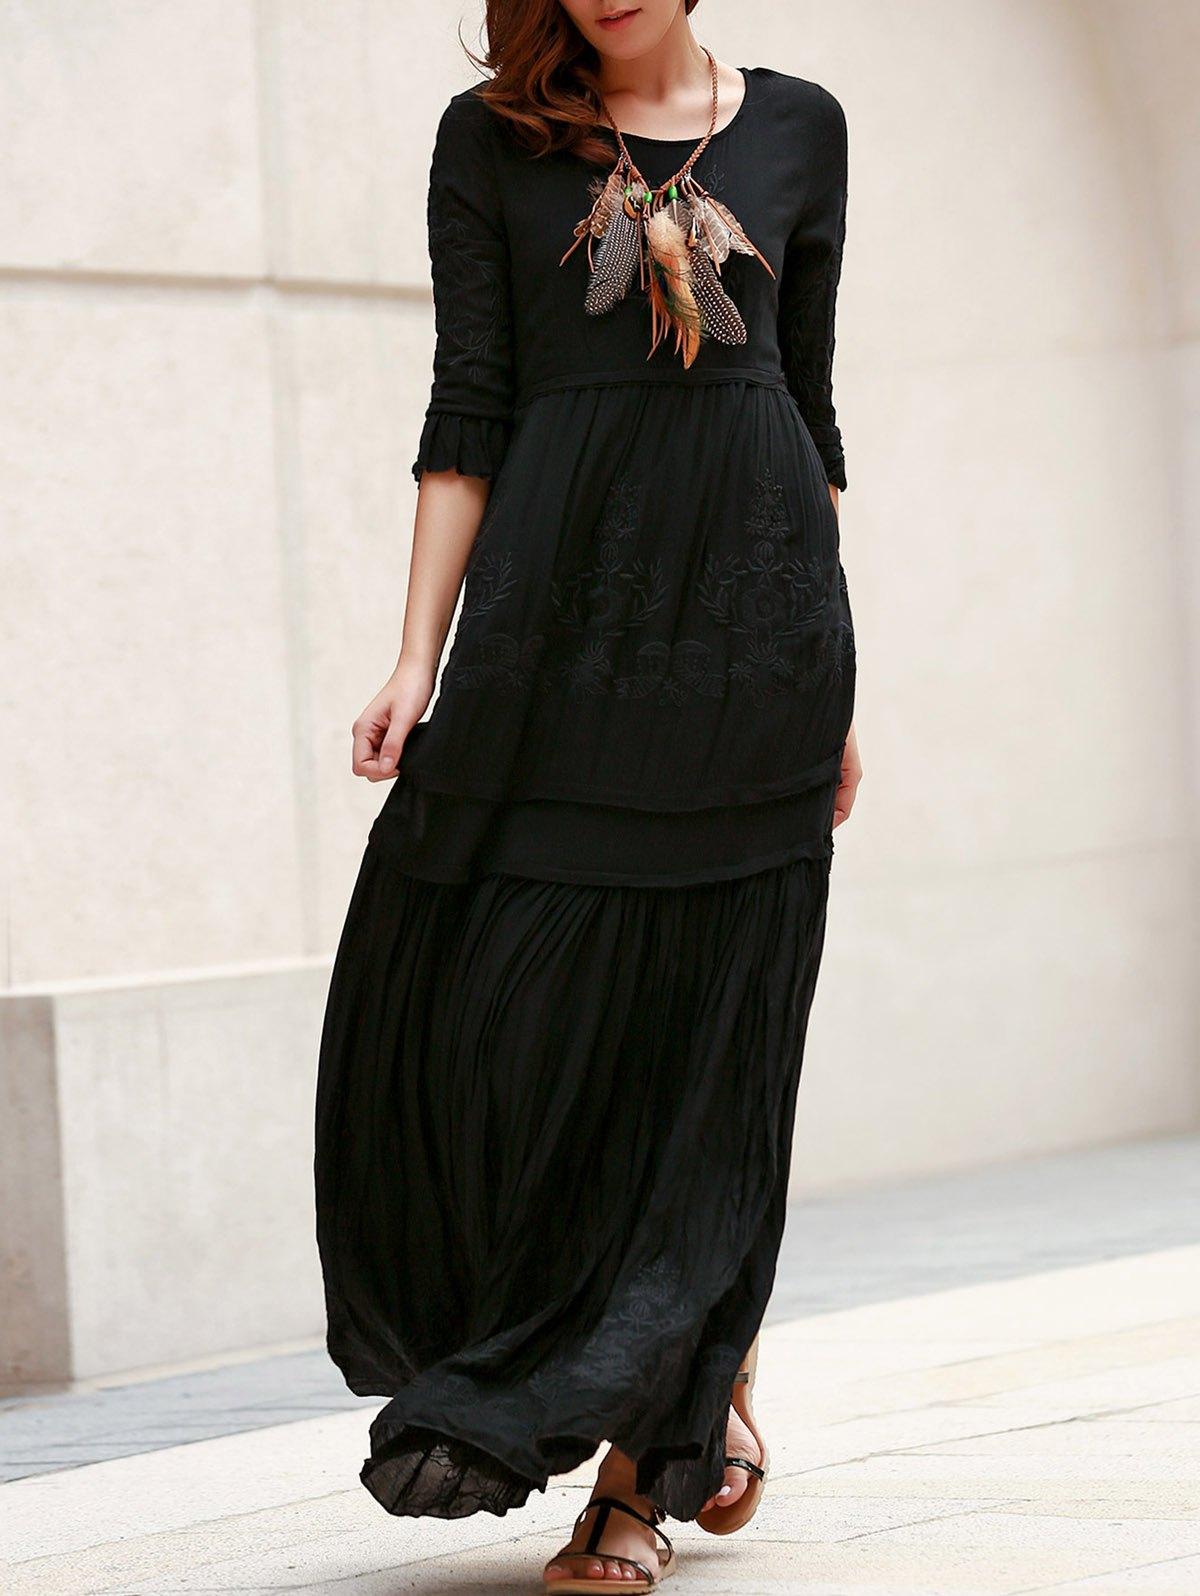 Trendy 3/4 Sleeve Round Collar Solid Color Embroidered Women's Dress - BLACK S